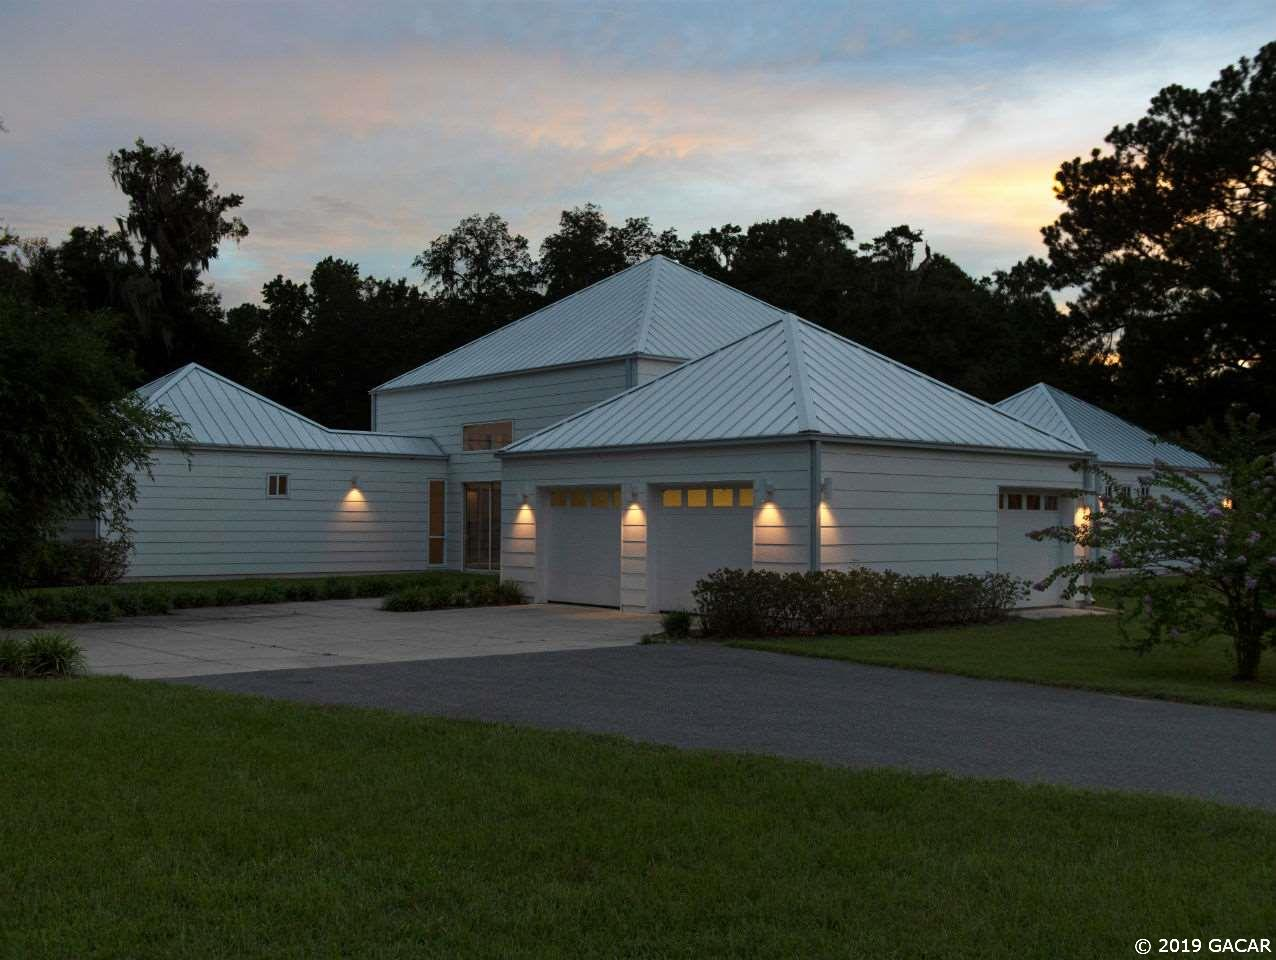 12115 NW 112 Avenue, Alachua, Florida 4 Bedroom as one of Homes & Land Real Estate